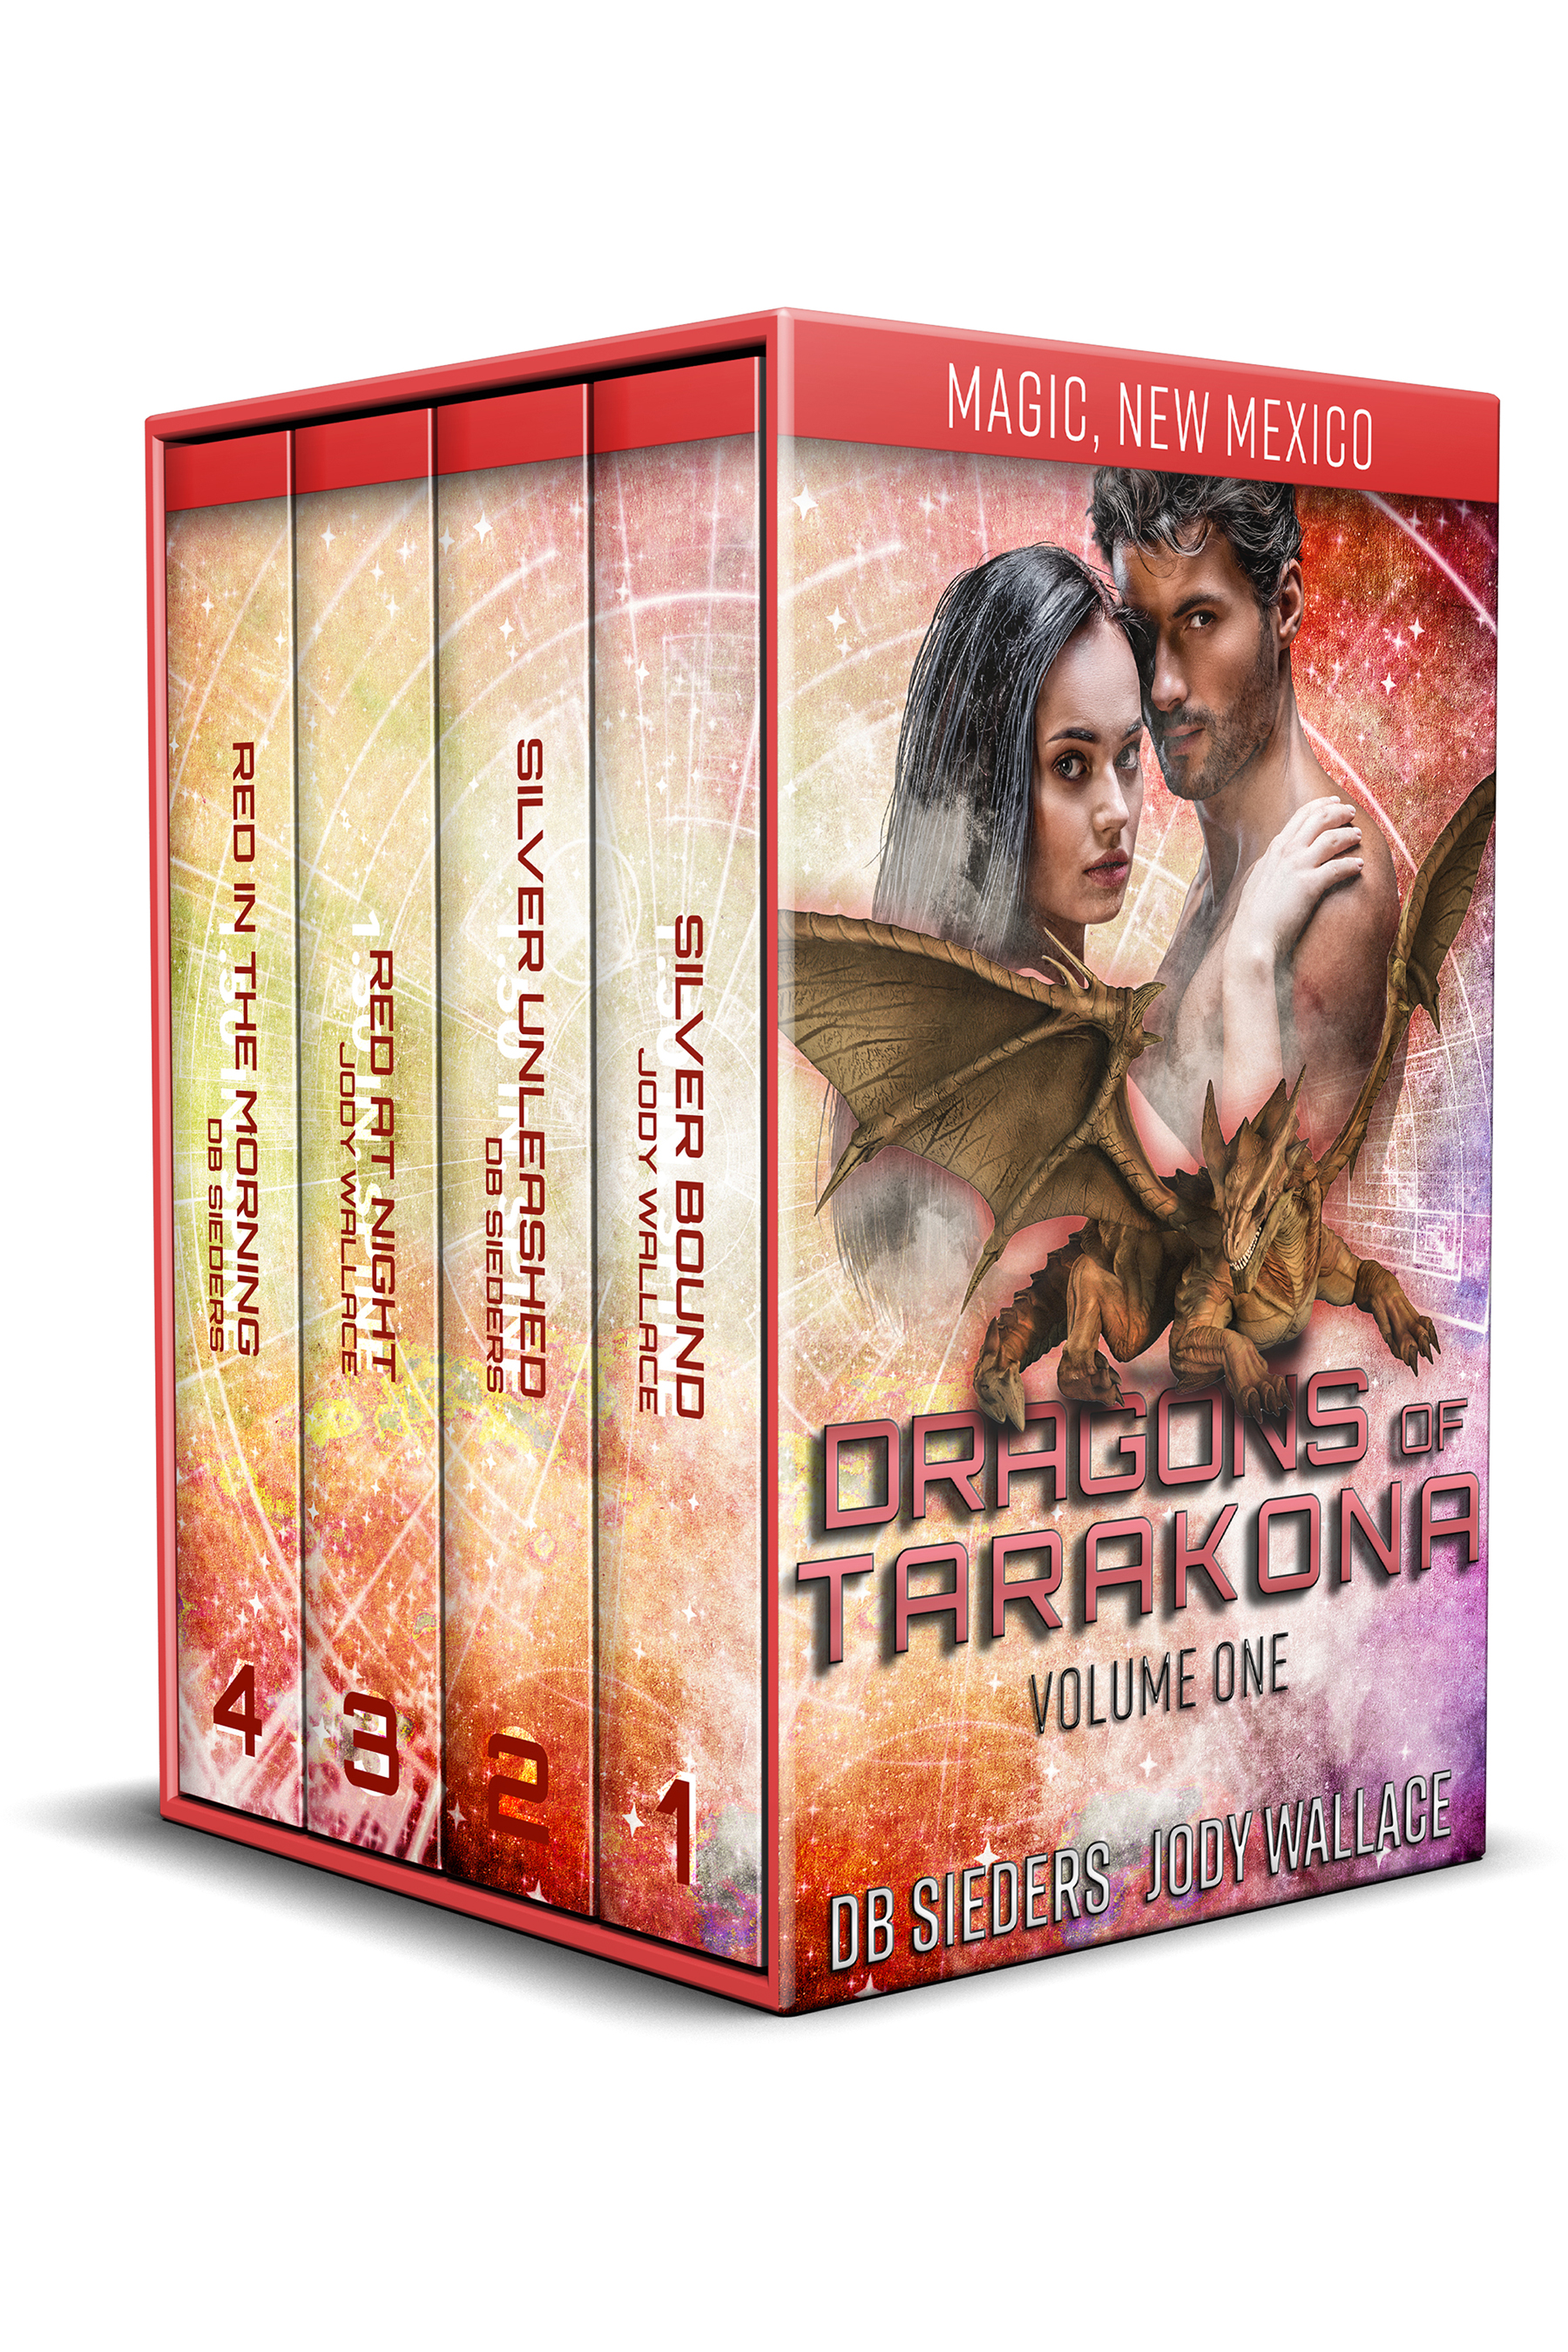 a box set for the dragons of tarakona series books one through four